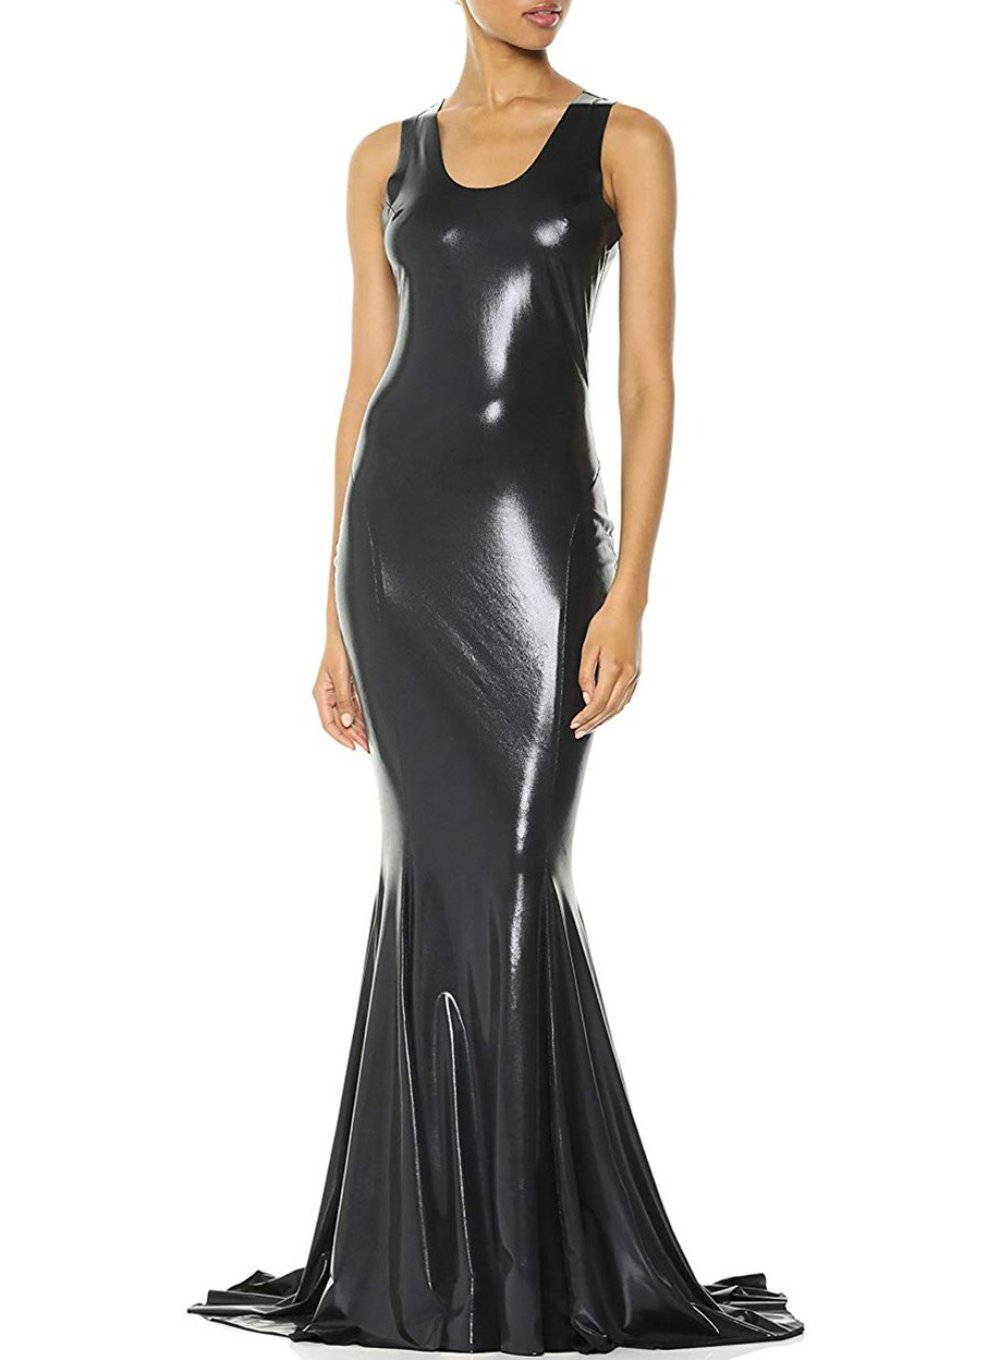 NORMA KAMALI | Metallic Racerback Fishtail Gown in Dark Gunmetal